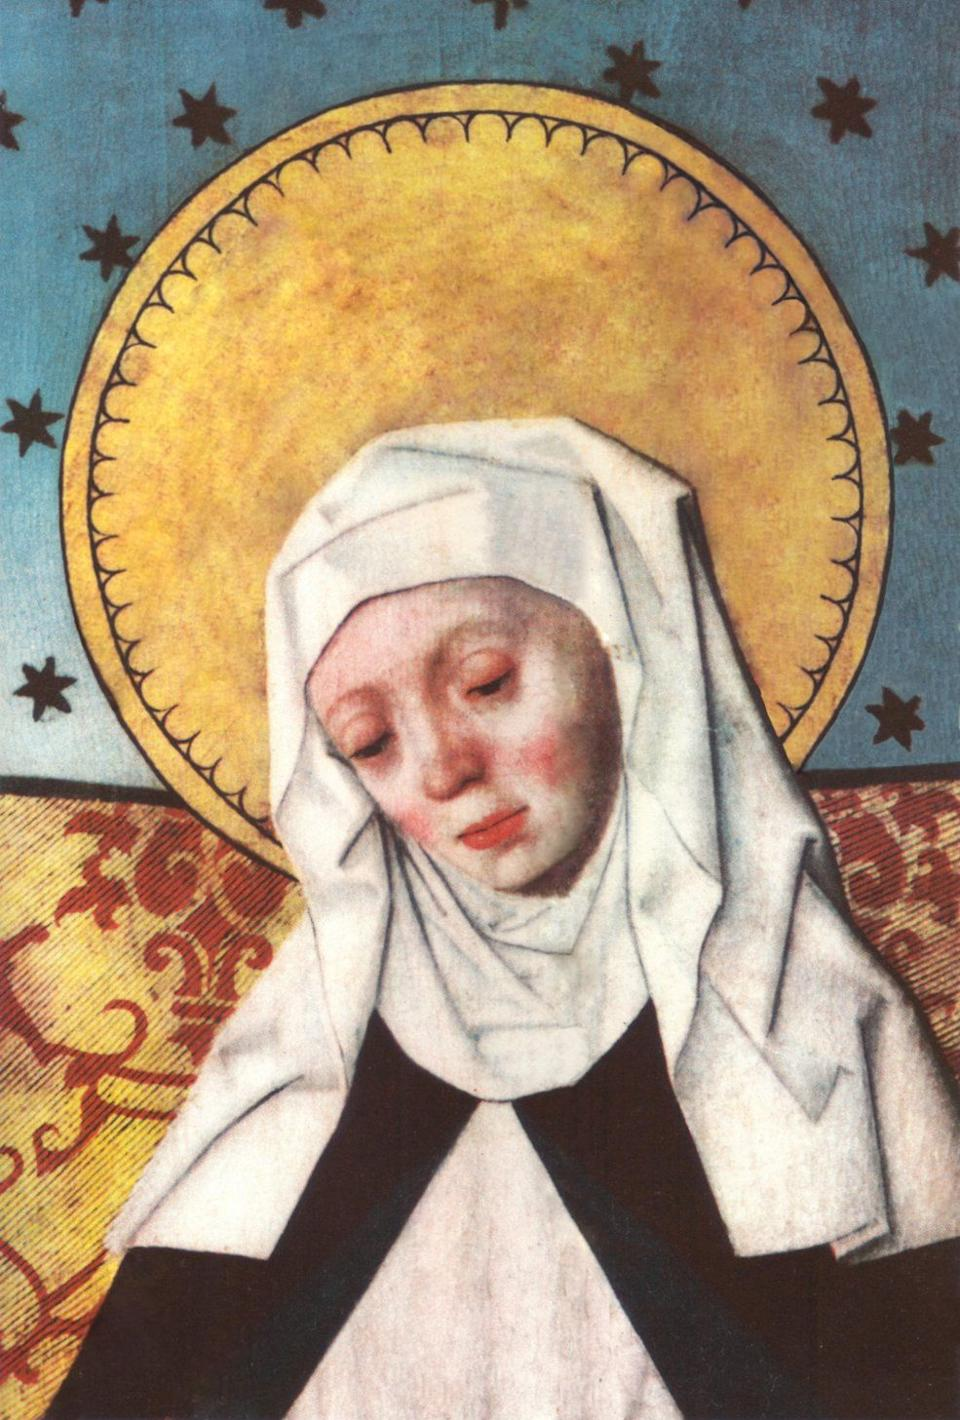 "Unlike many of her counterparts, <a href=""http://www.catholic.org/saints/saint.php?saint_id=264"">Bridget of Sweden</a> did not devote herself fully to a religious life until her 40s when her husband died in 1344. Reportedly distraught after his death, Bridget spent long hours in prayer beside her husband's grave at the abbey of Alvastra. There she believed God spoke to her, telling her to ""be my bride and my canal."" He gave her the task of founding new religious order, and she went on to start the Brigittines, or the Order of St. Saviour. Both men and women joined the community, with separate cloisters. They lived in poor convents and were instructed to give all surplus income to the poor. In 1350, Bridget braved the plague, which was ravaging Europe, to pilgrimage to Rome in order to obtain authorization for her new order from the pope. It would be 20 years before she received this authorization, but Bridget quickly became known throughout Europe for her piety. She was canonized in 1391, less than 20 years after her death."